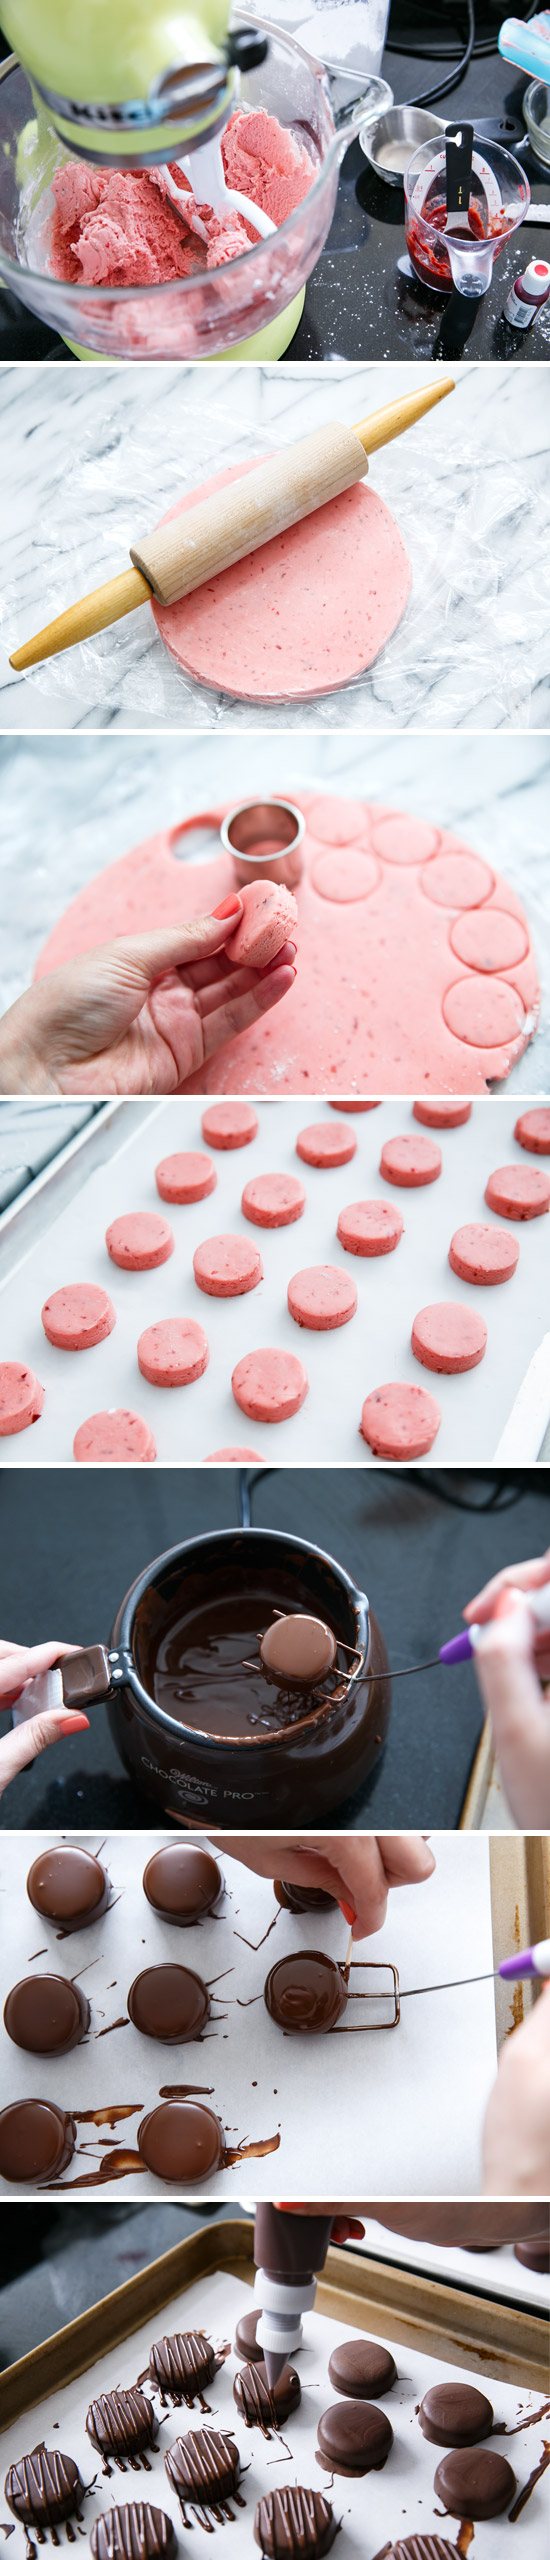 How to make fondant cream candies